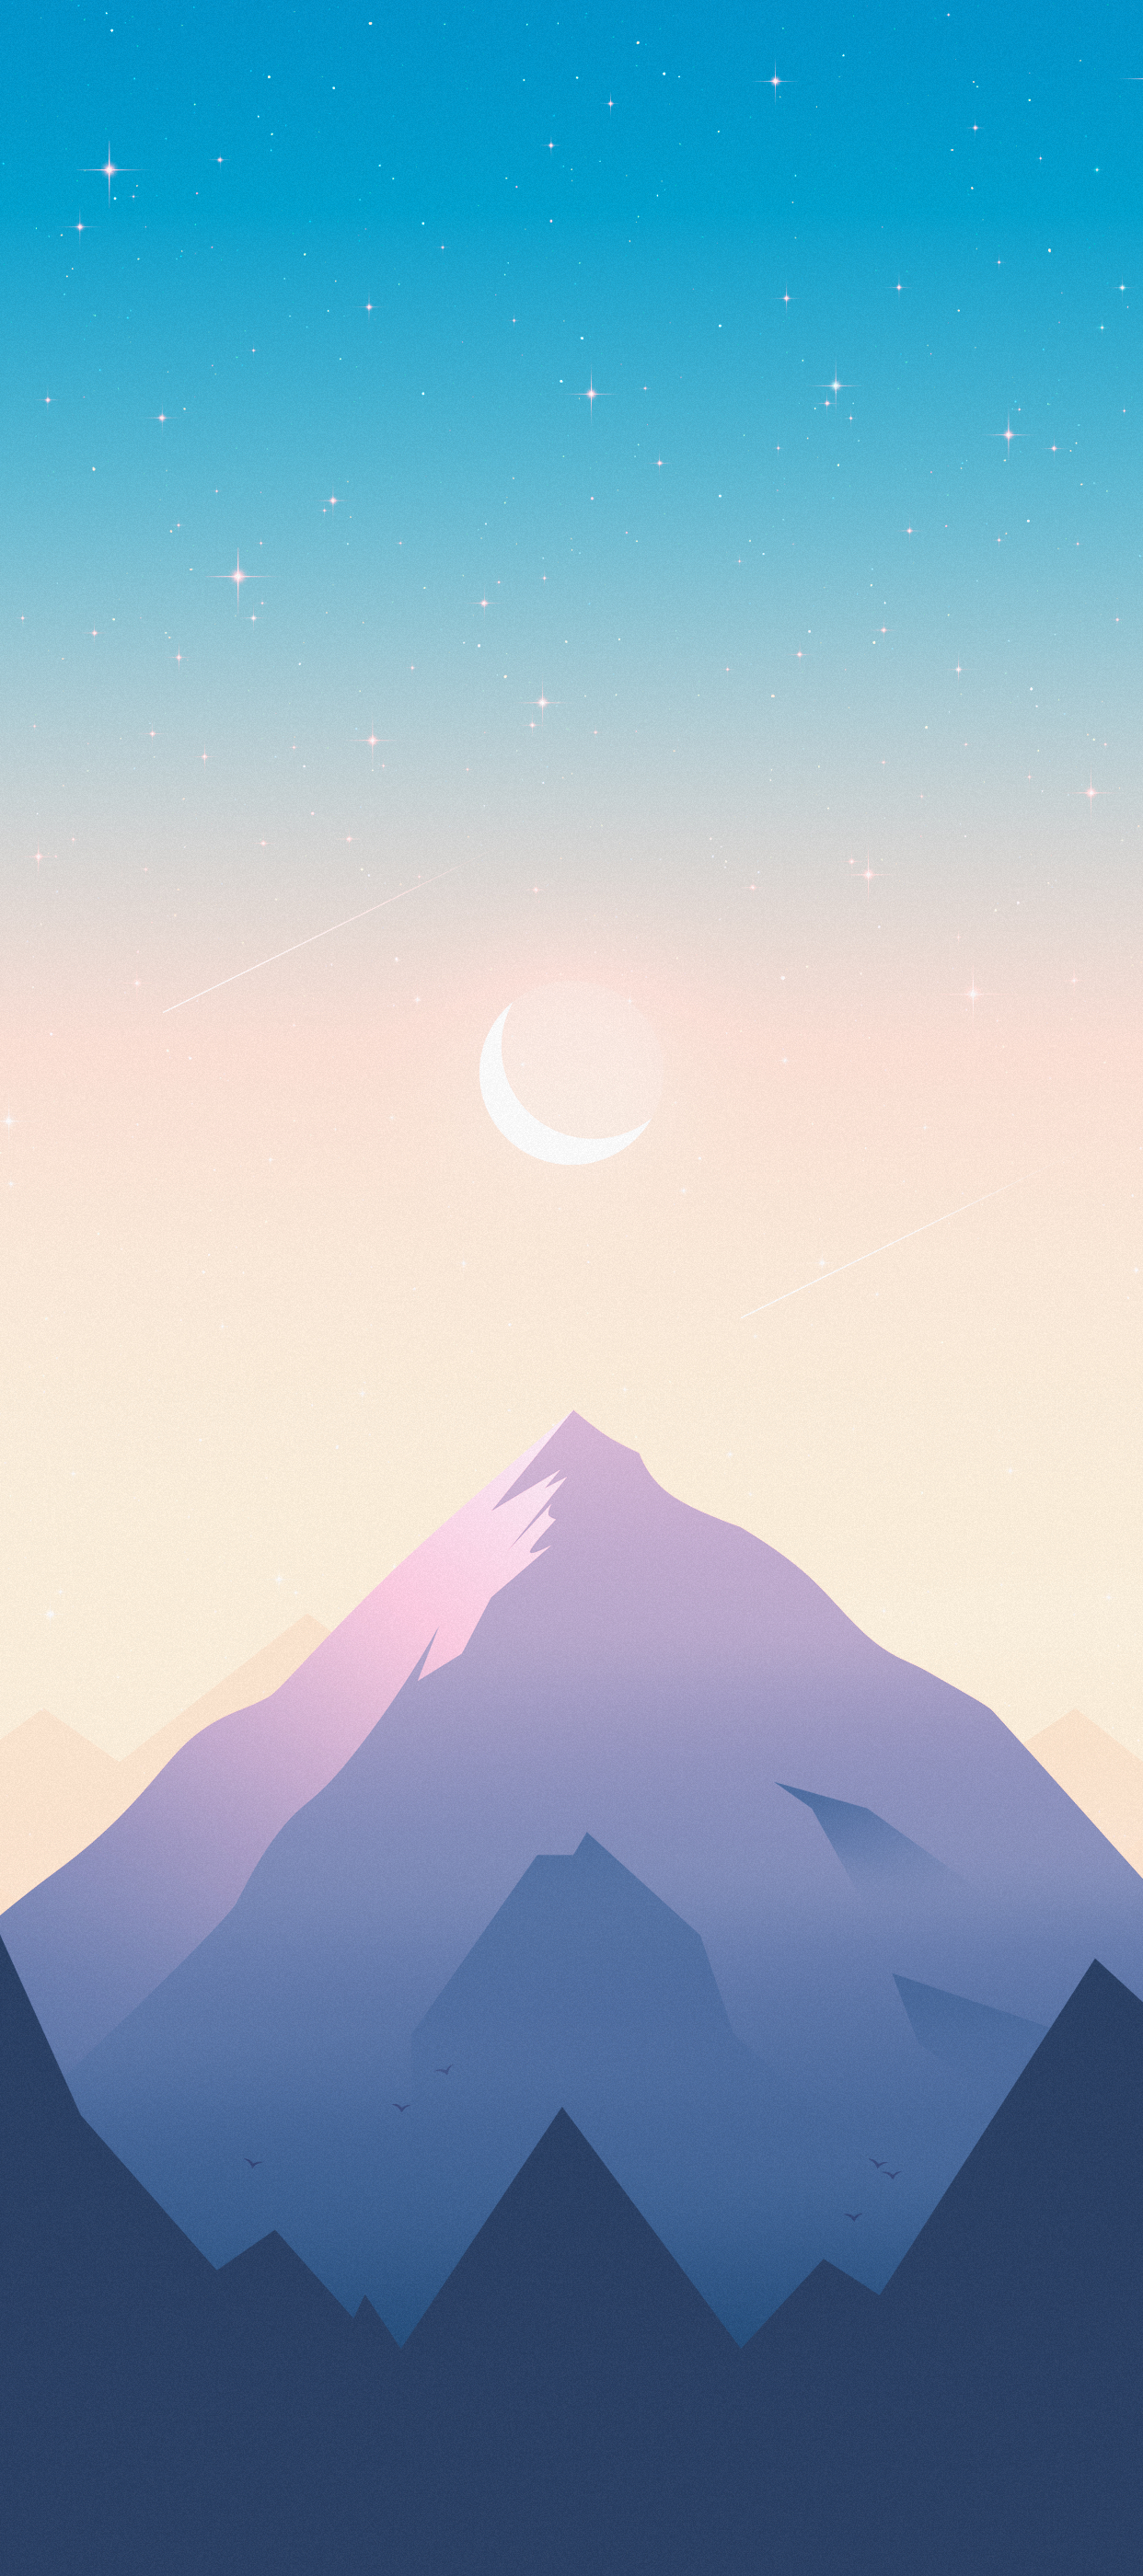 mountain valley iphone wallpaper axellvak sunsrise moon